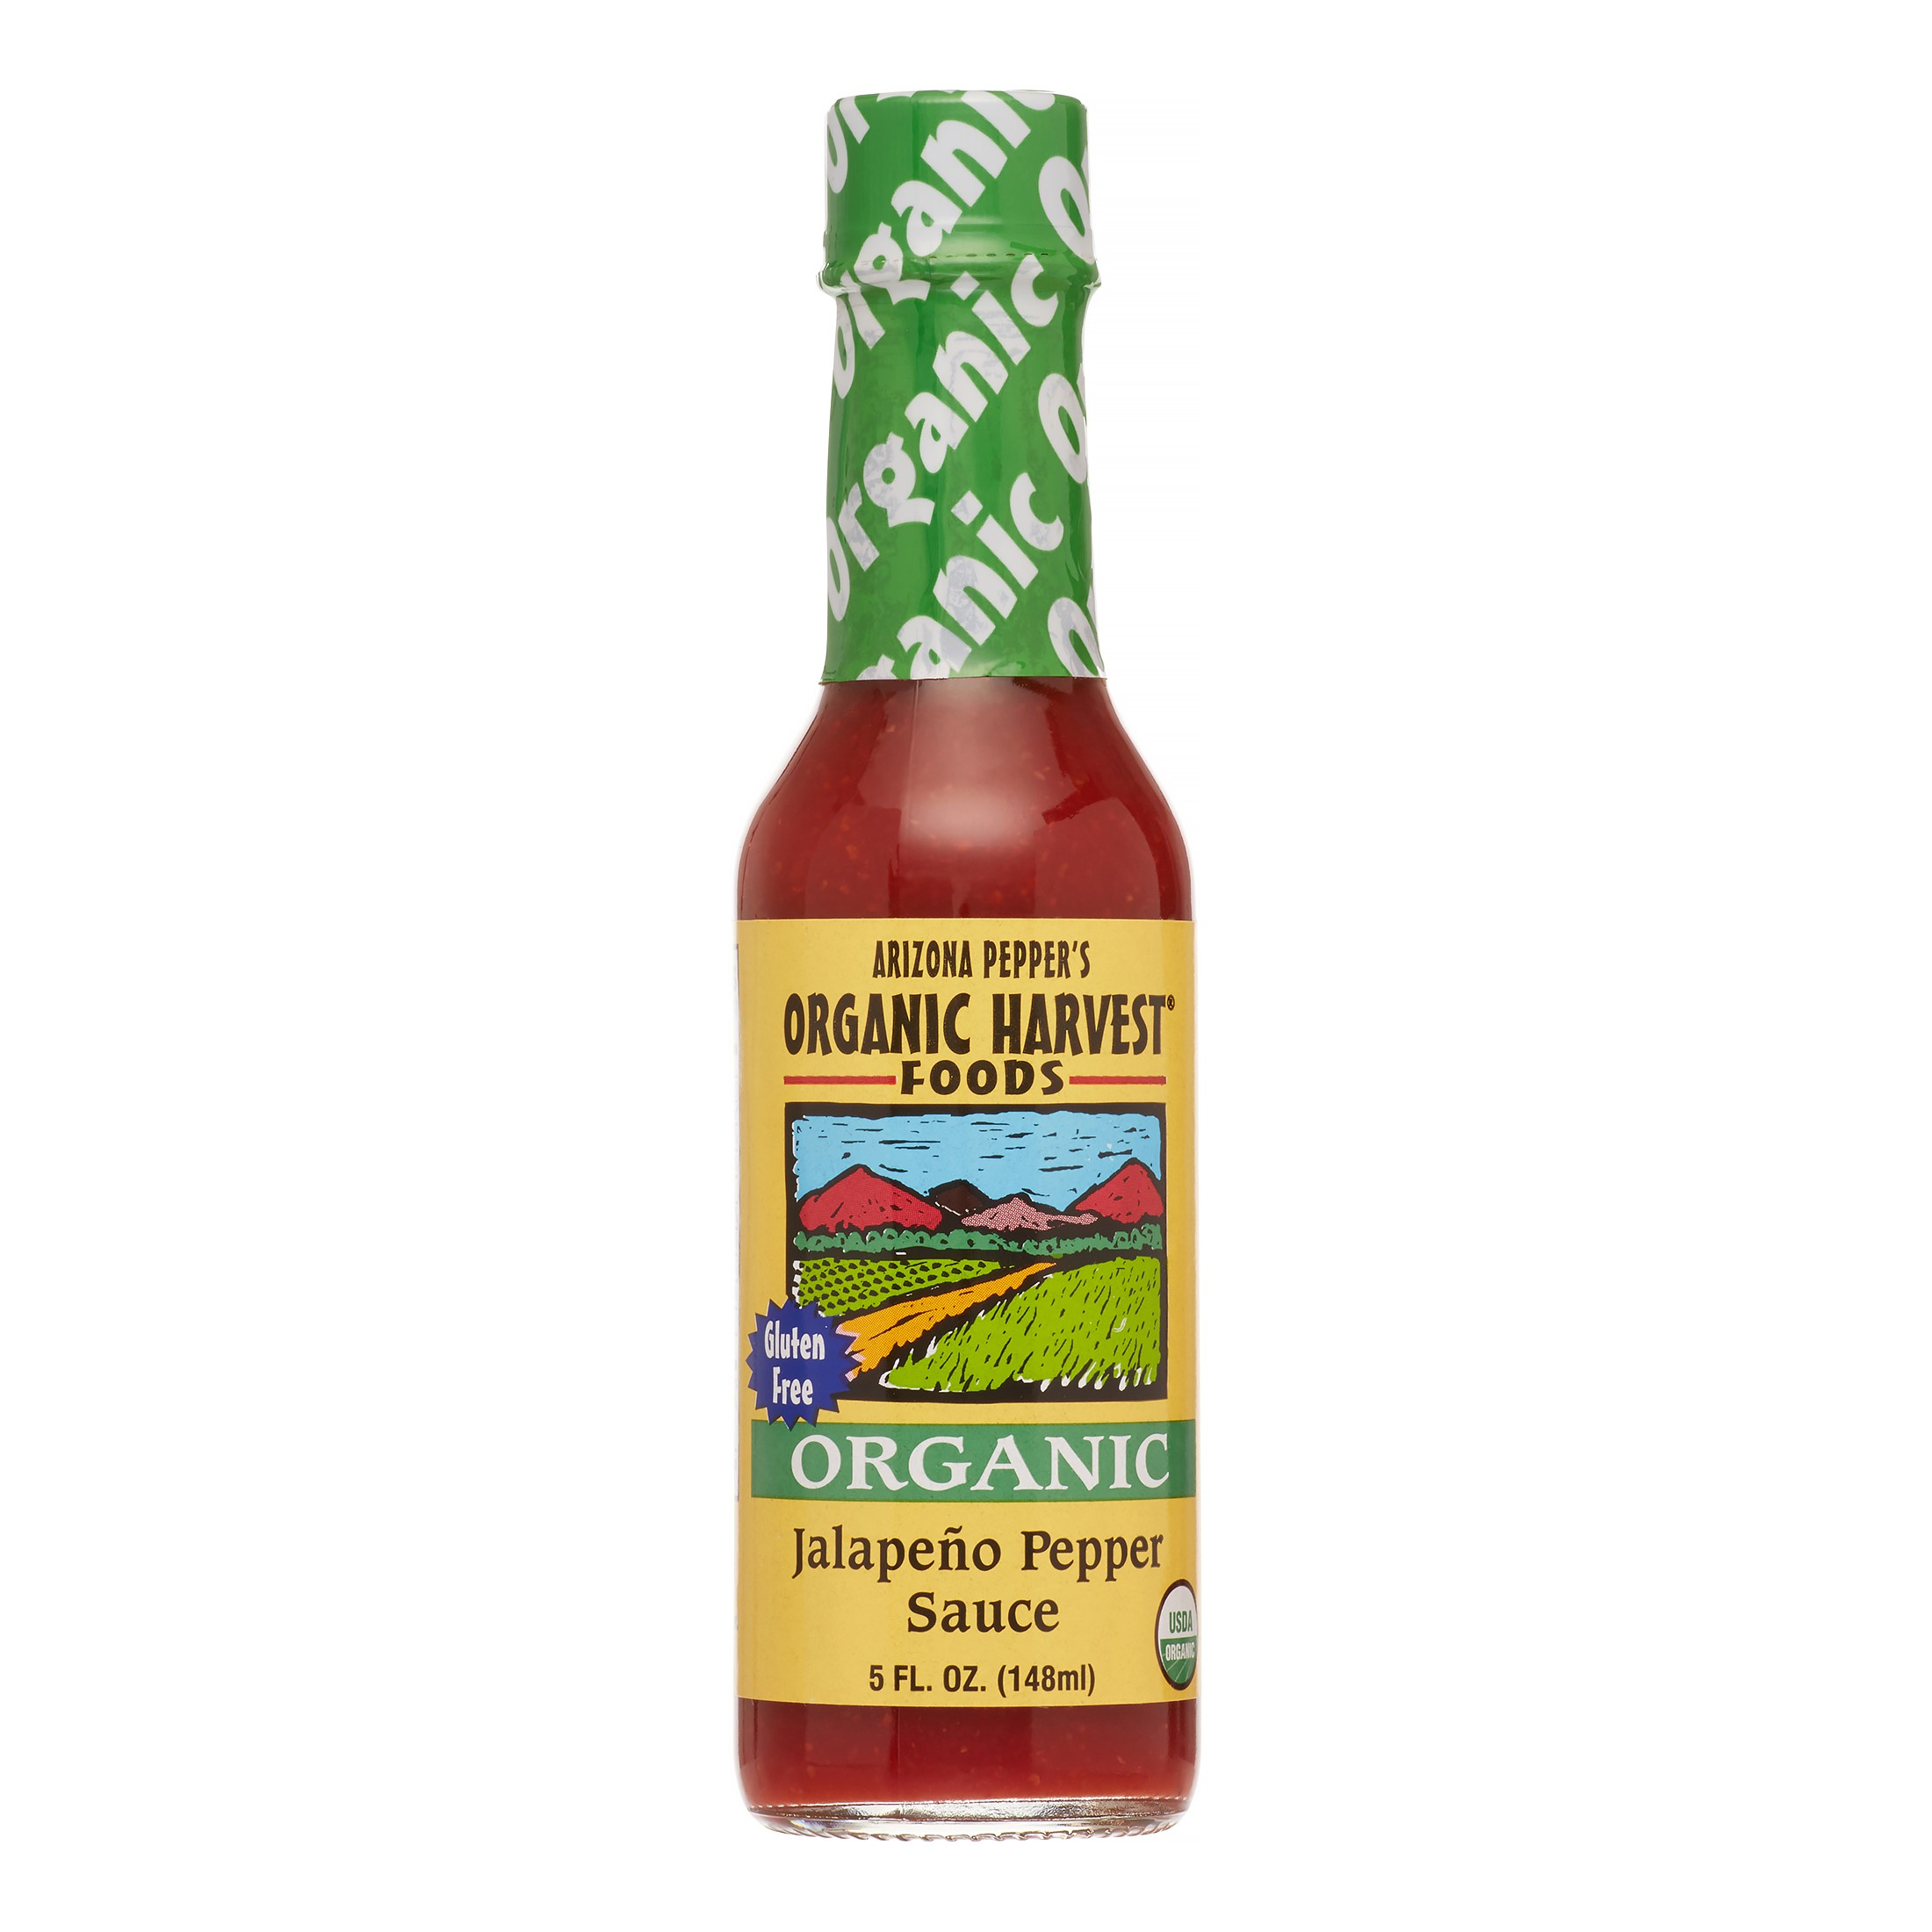 Arizona Pepper's Organic Harvest Foods Organic Jalapeno Pepper Sauce, 5 Fl Oz by Organic Harvest Foods